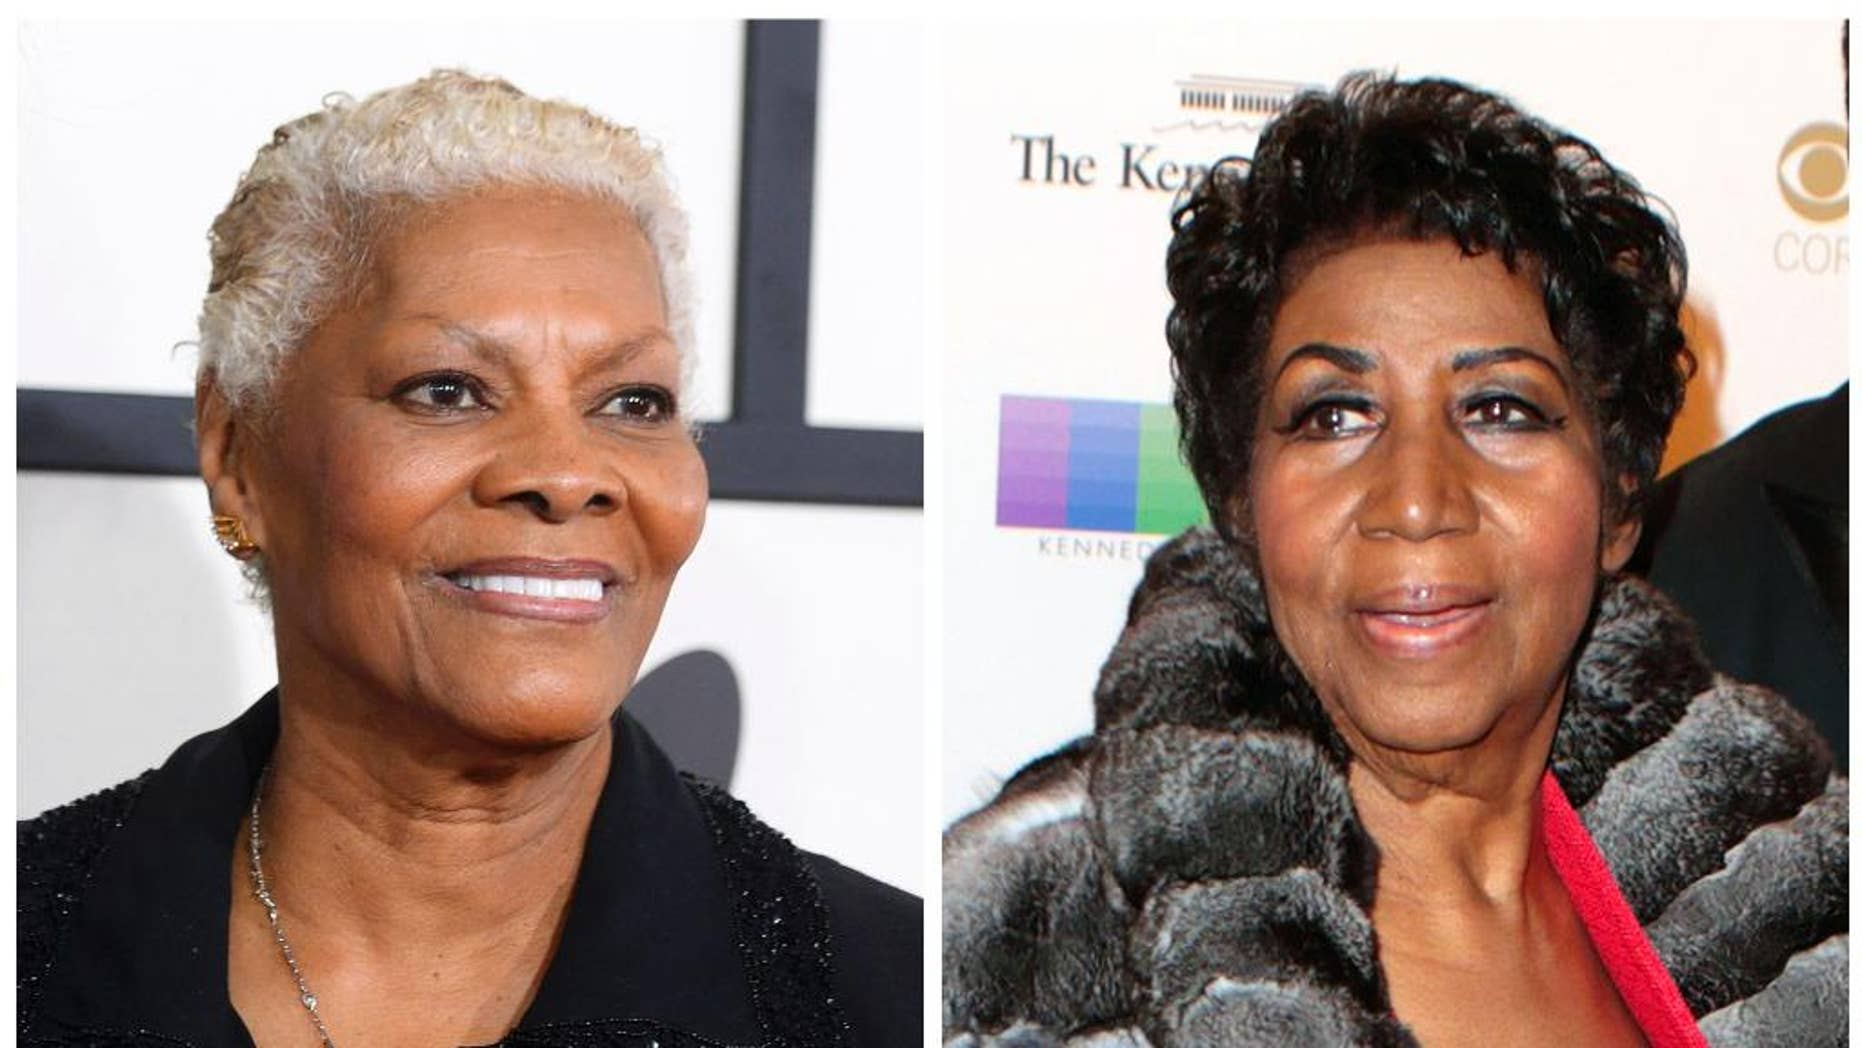 Aretha Franklin, right, slammed Dionne Warwick for statements Warwick made at Whitney Houston's funeral five years ago.